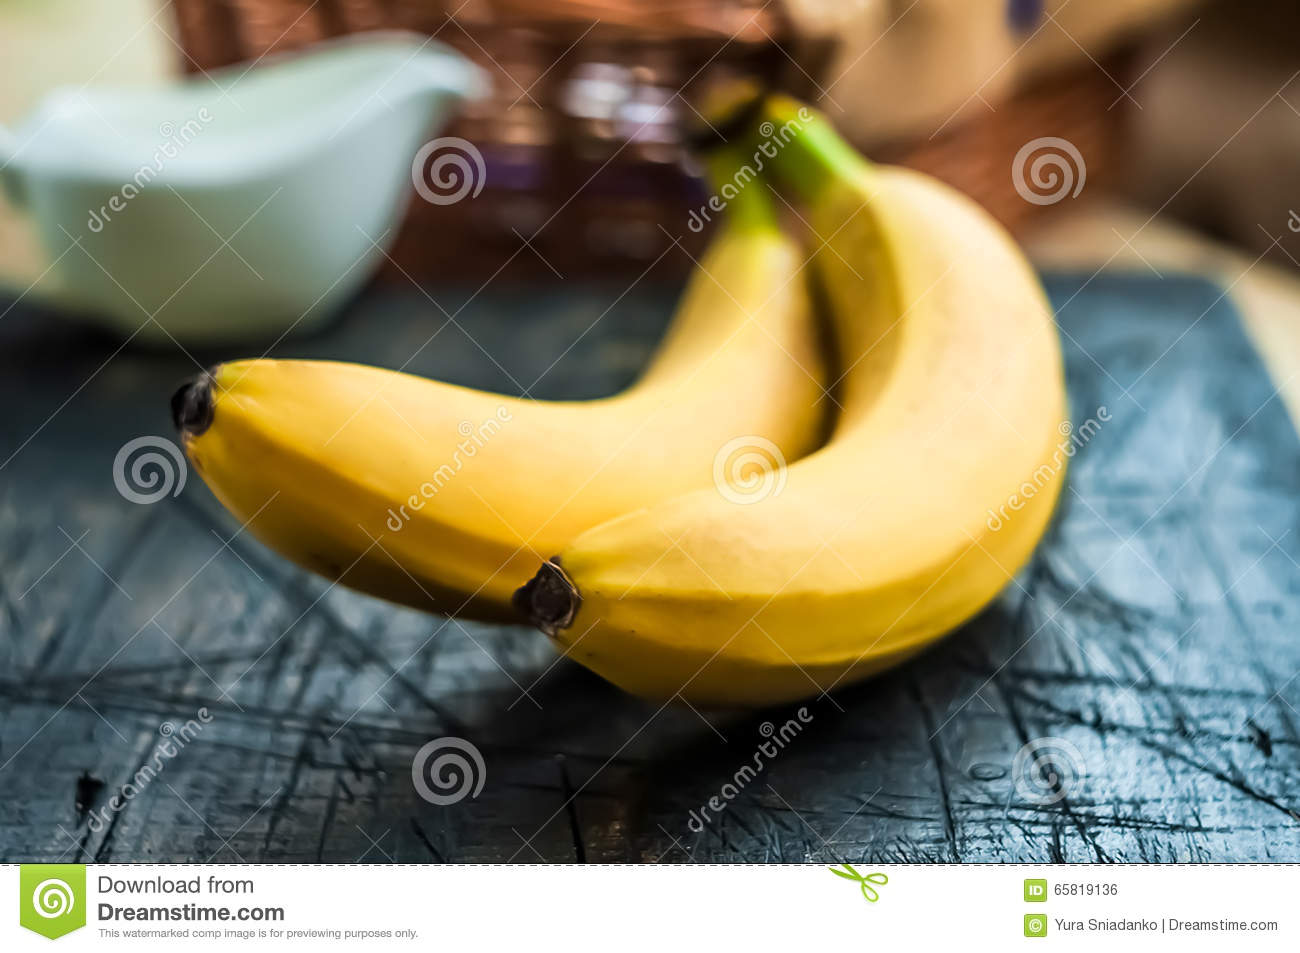 Banana On Table Two bananas on the table